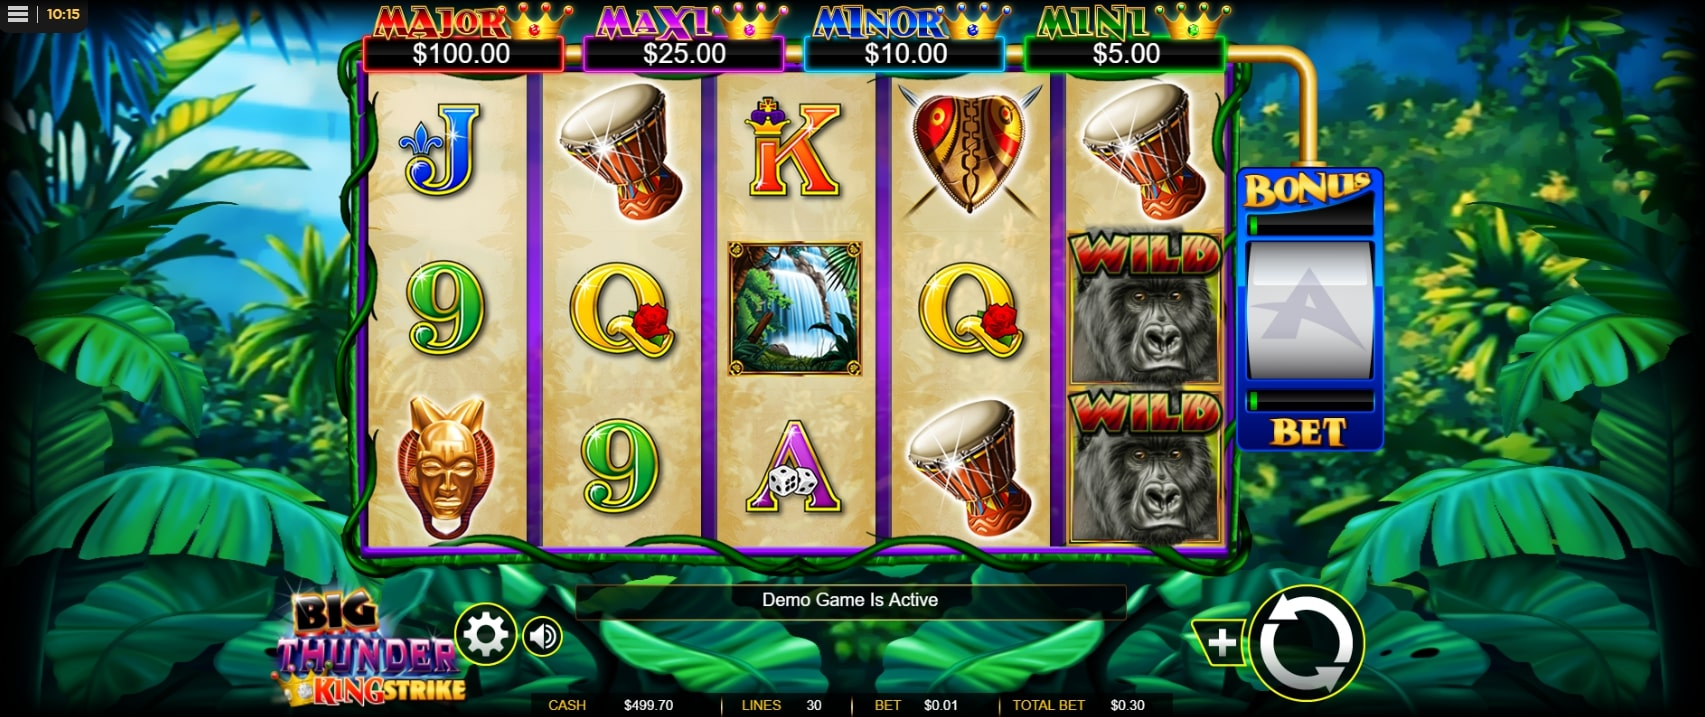 Big Thunder King Strike slot screenshot with two gorillas and jungle in the background